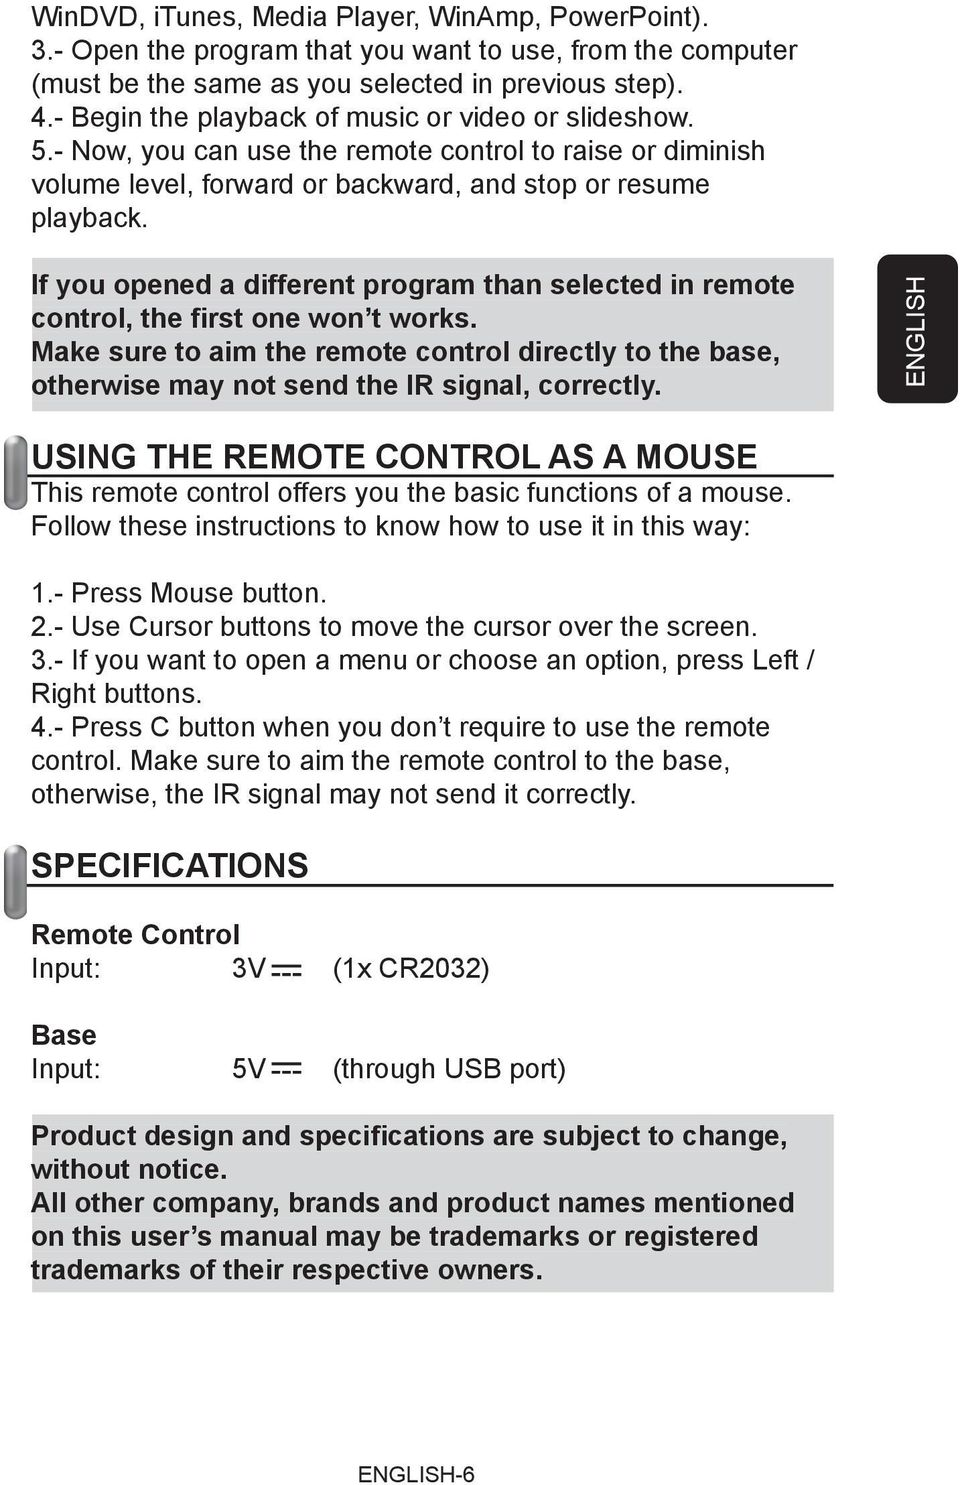 If you opened a different program than selected in remote control, the first one won t works. Make sure to aim the remote control directly to the base, otherwise may not send the IR signal, correctly.